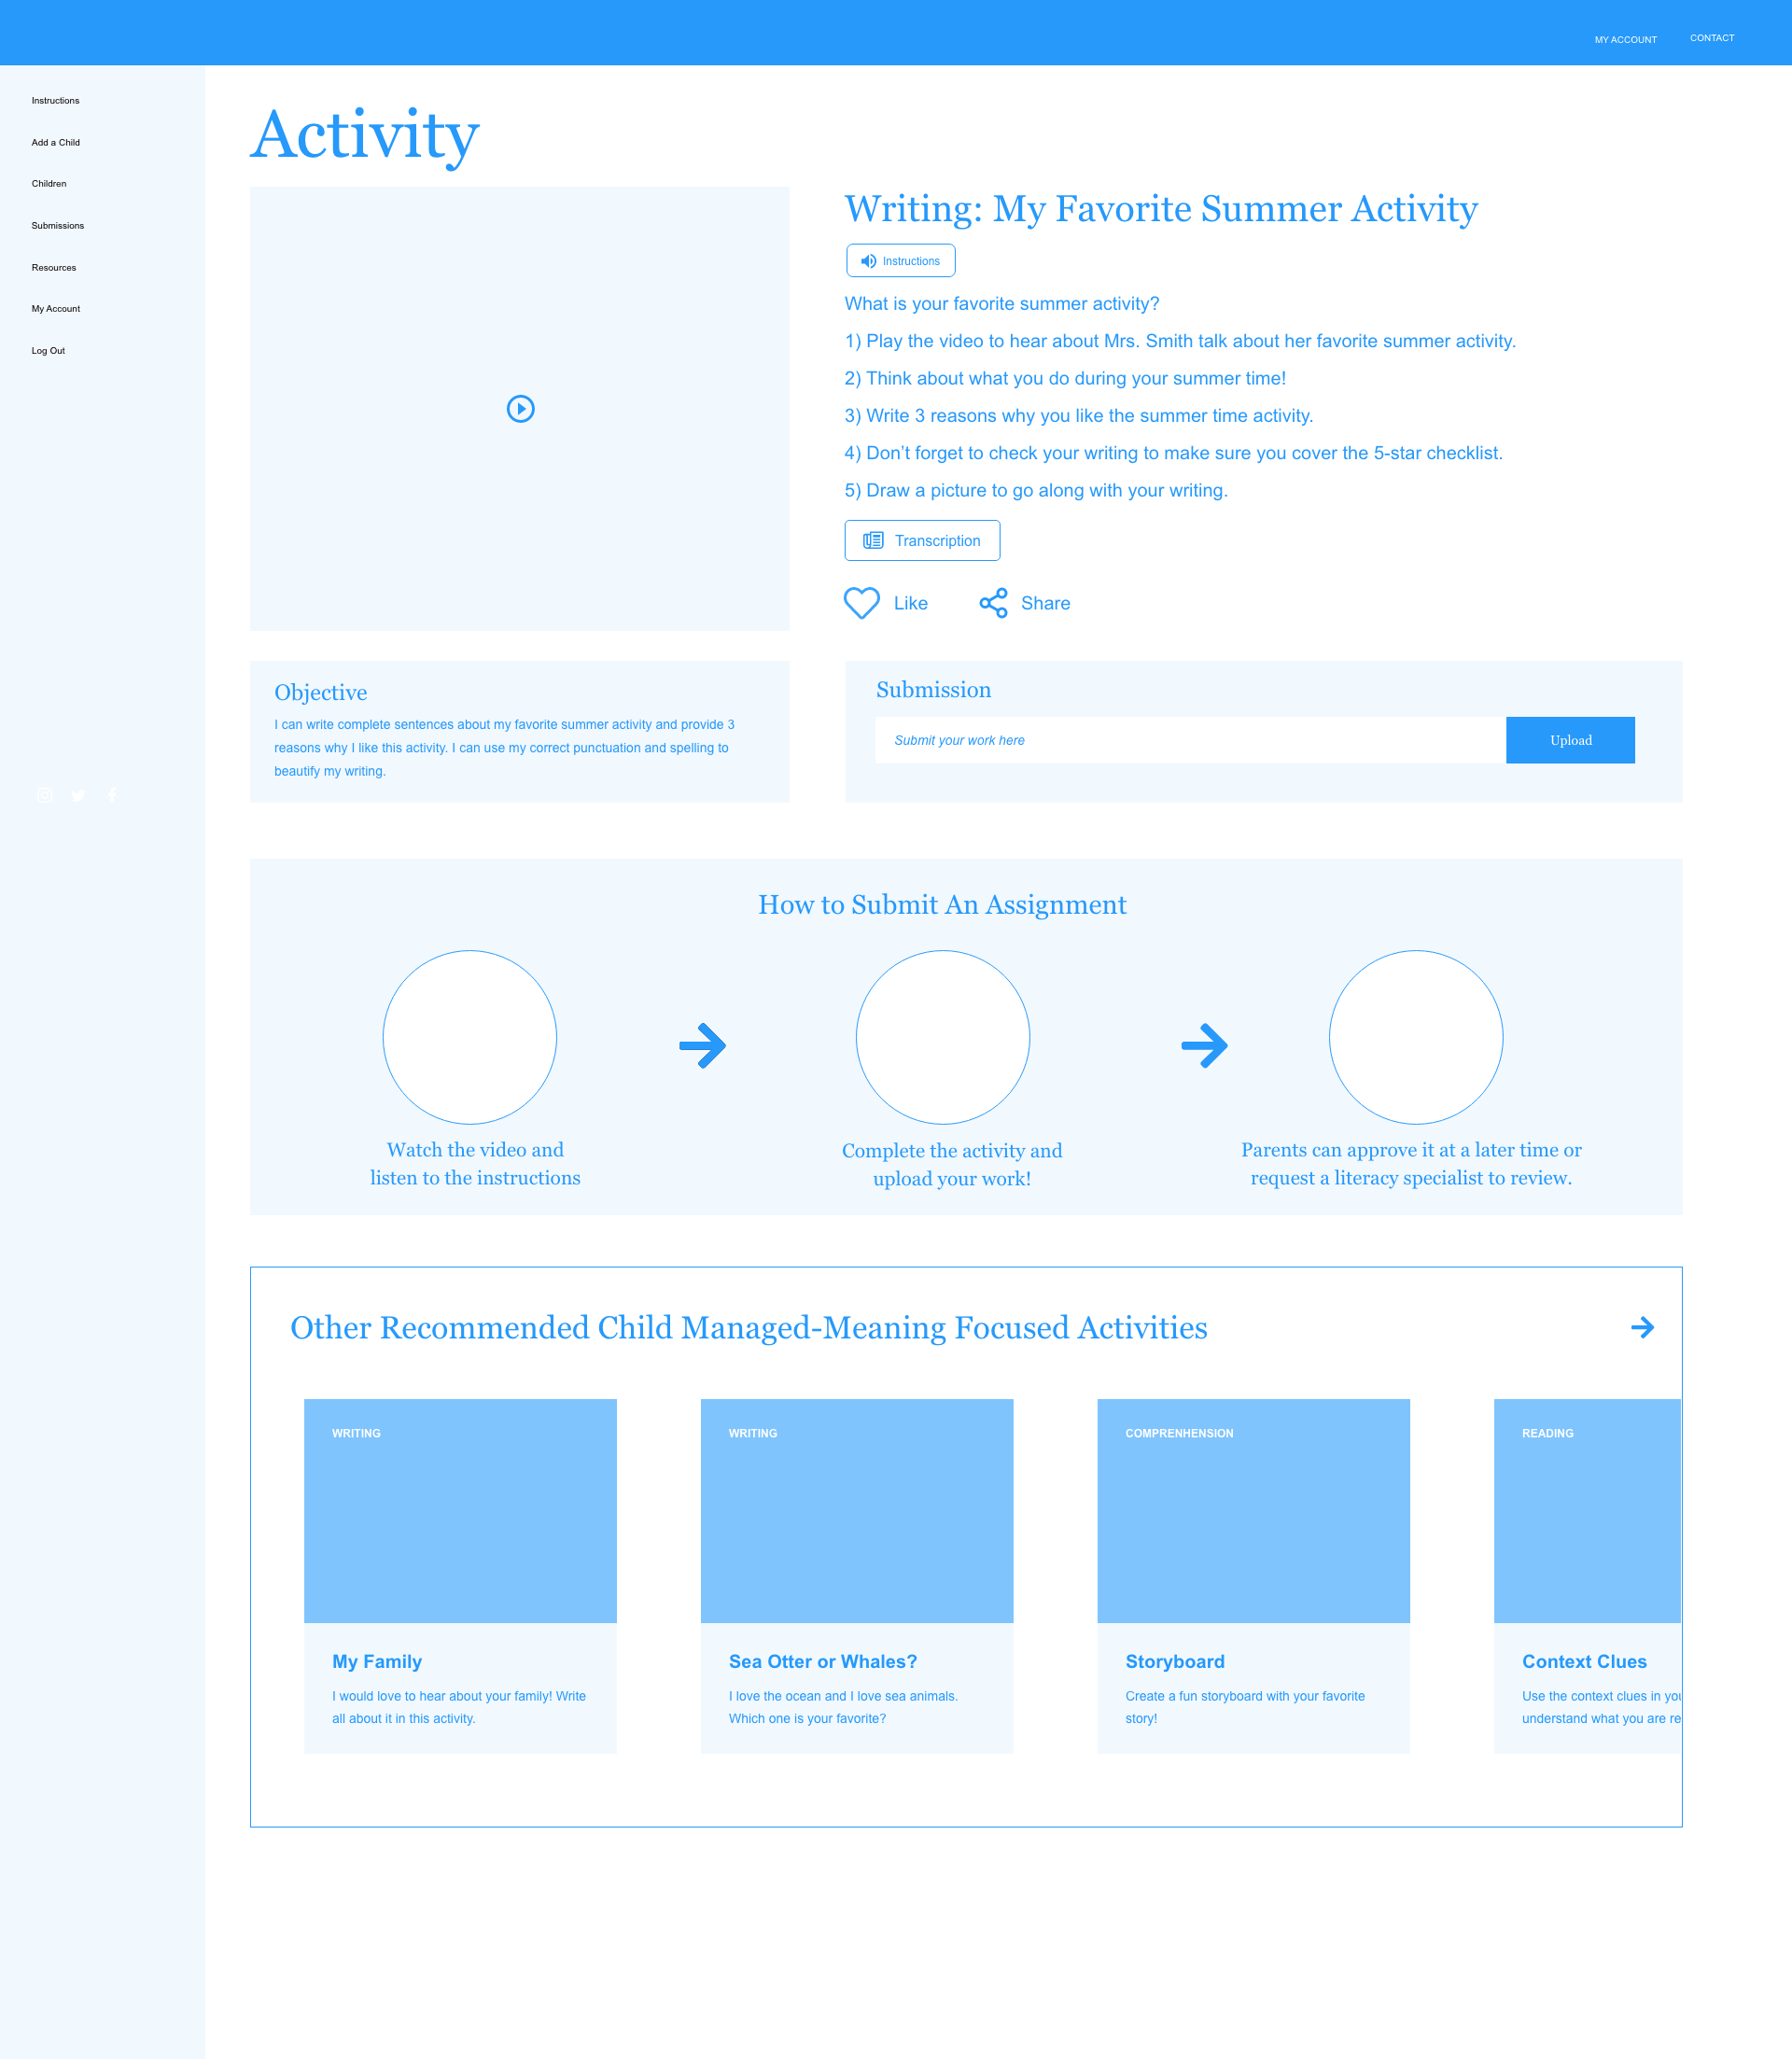 Activity-Video-Page wireframe